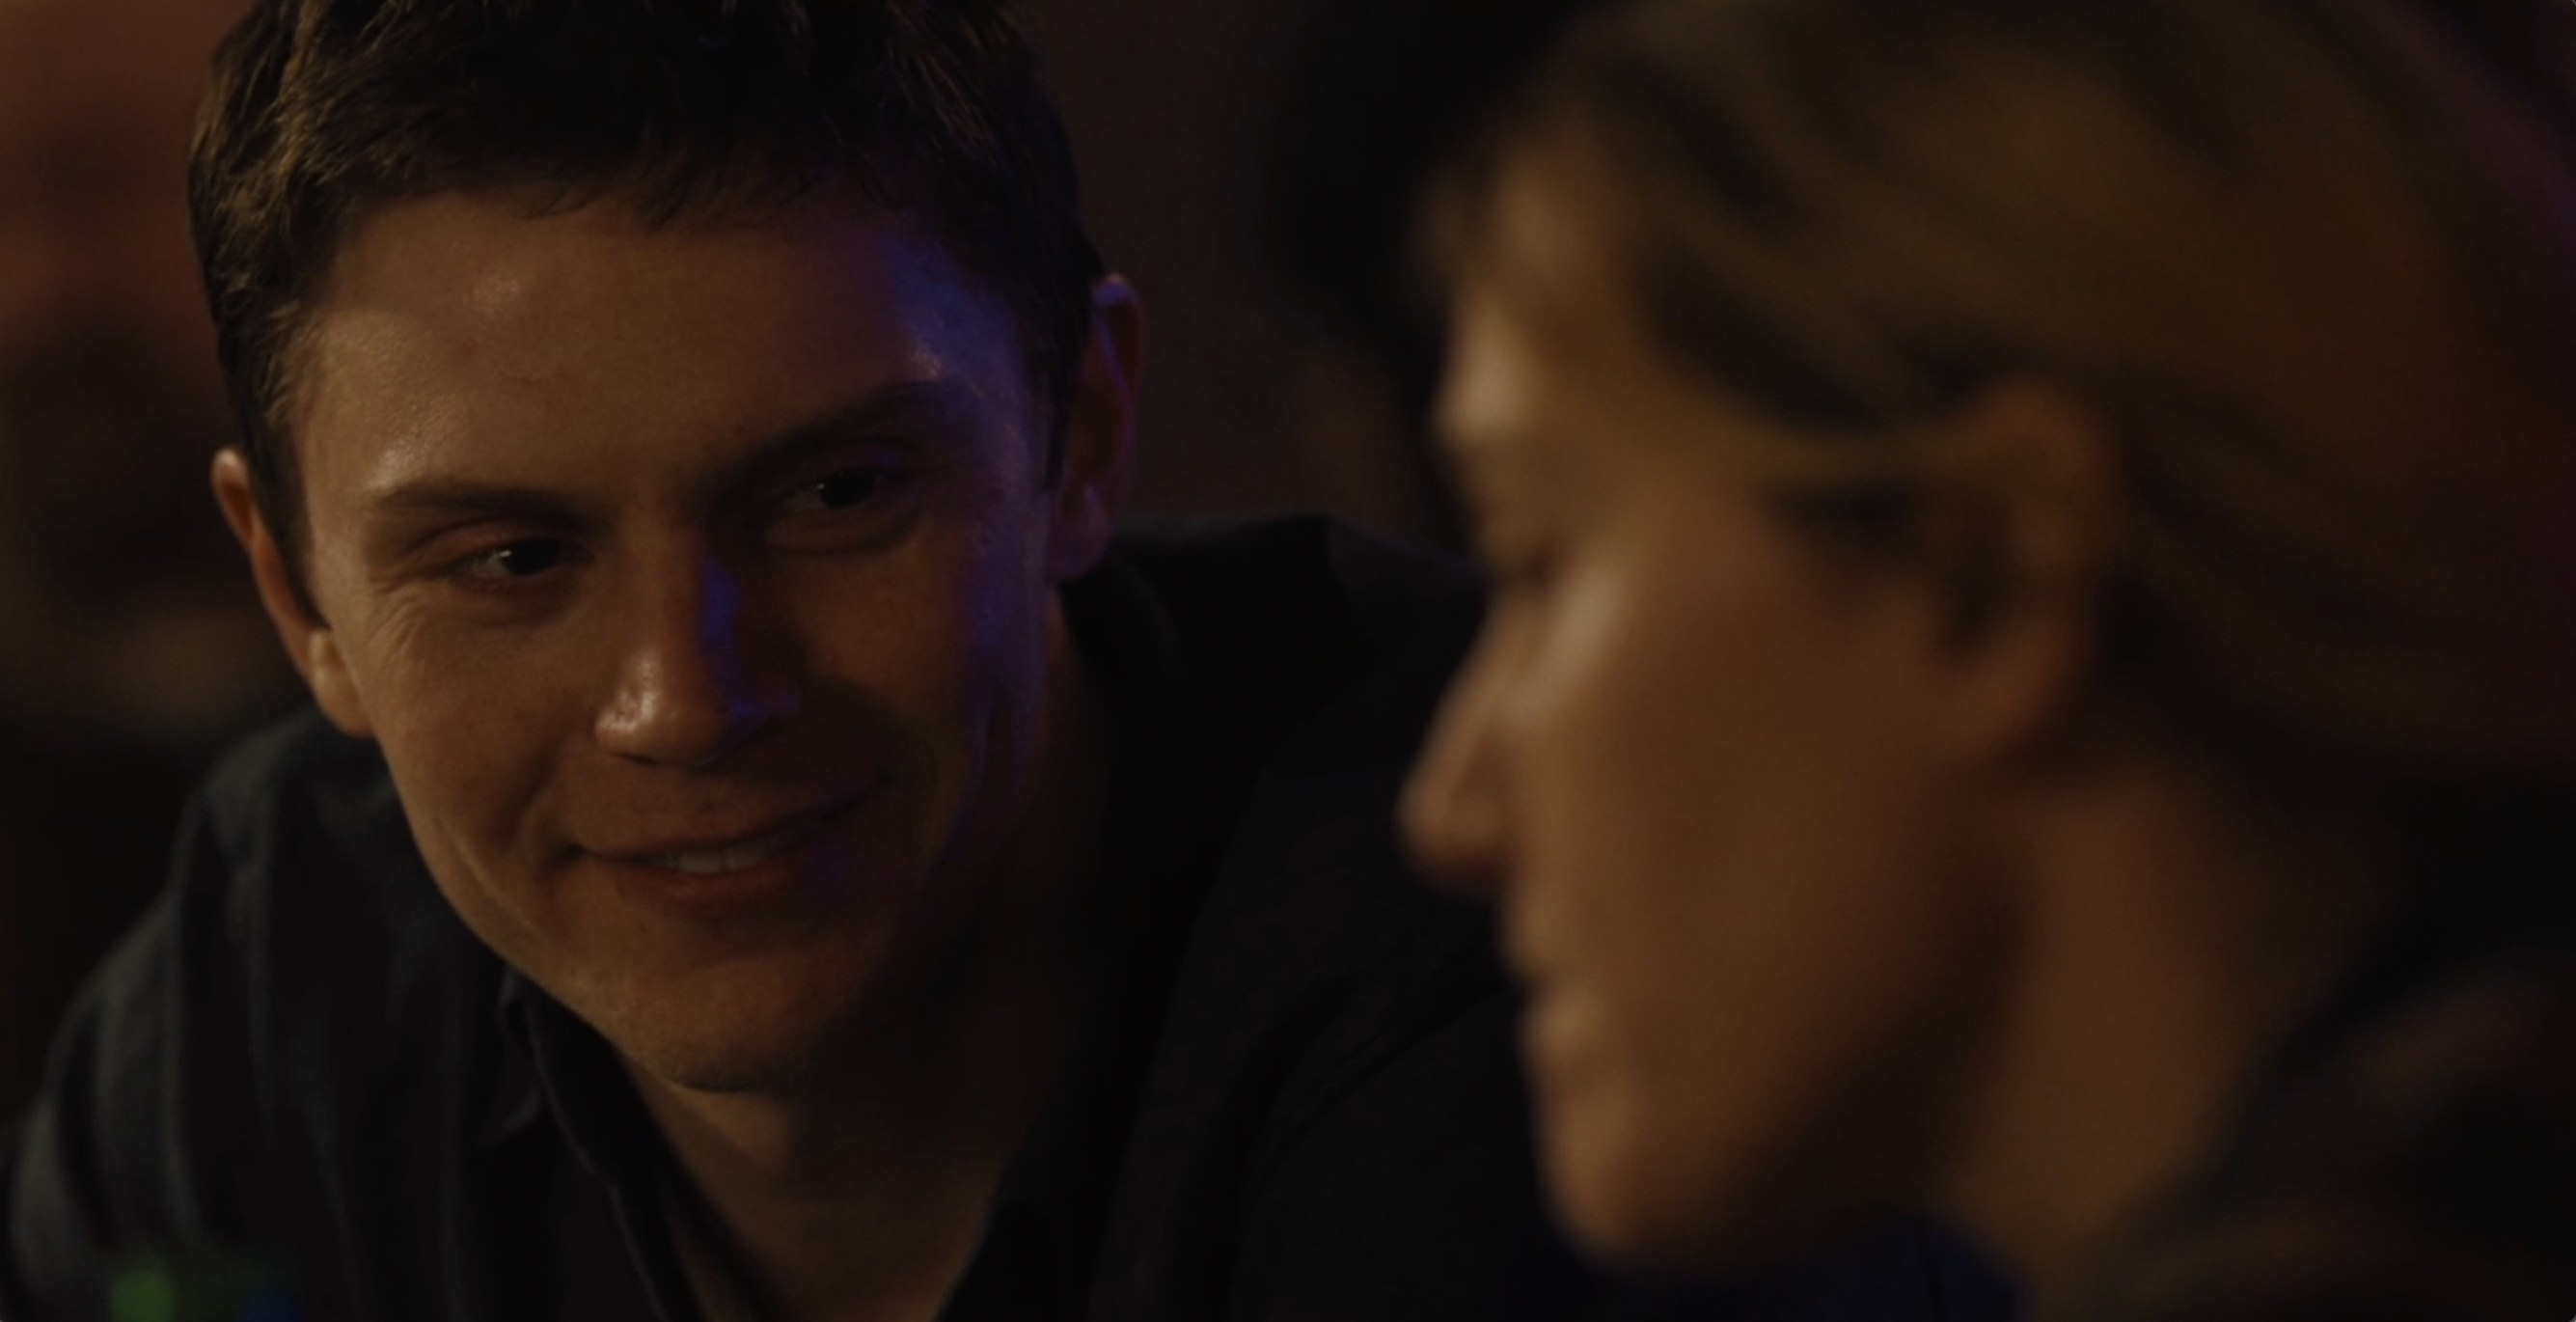 Colin smiling at Mare